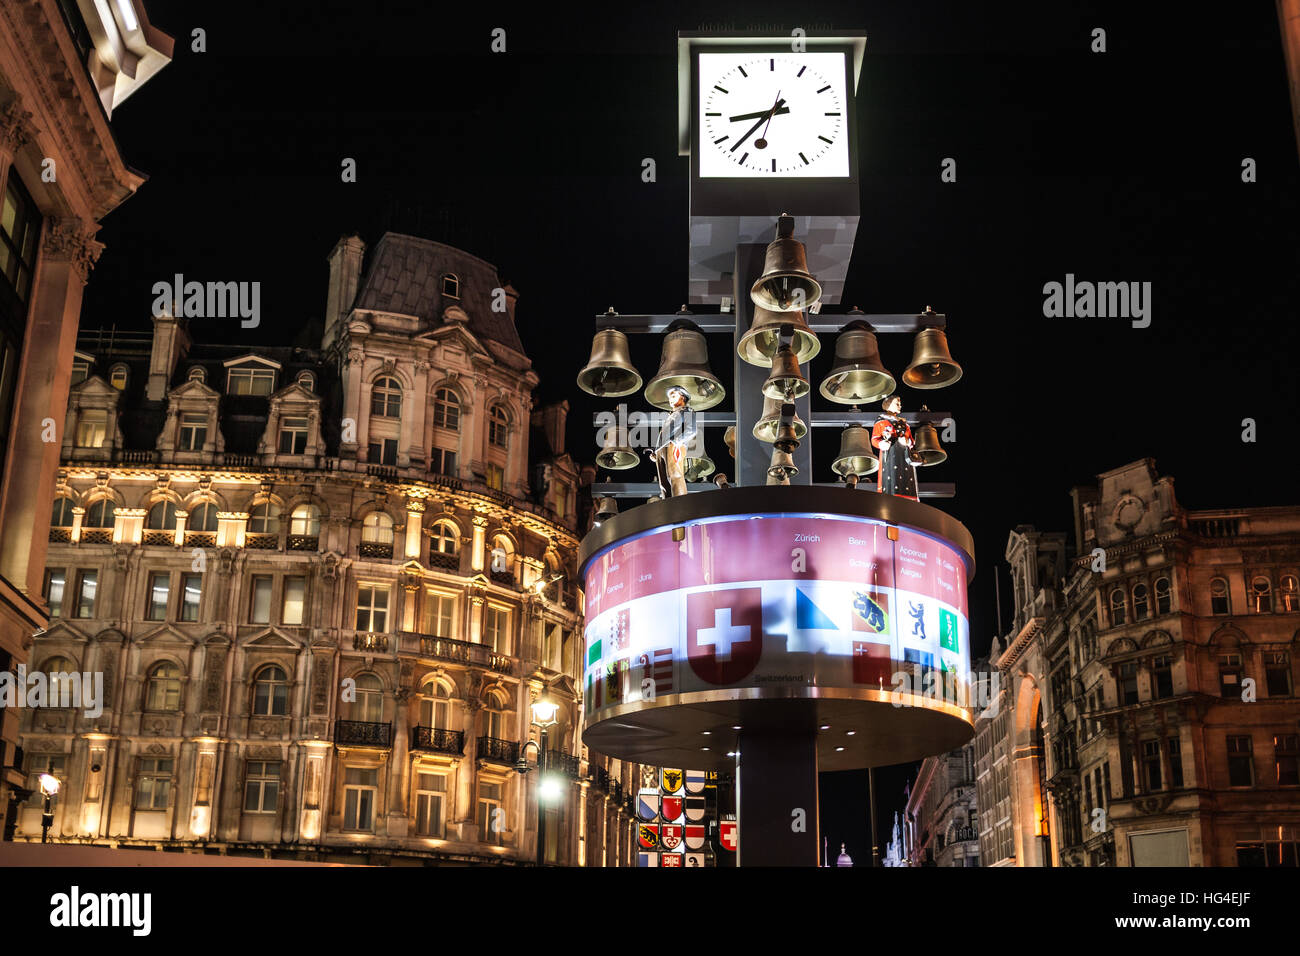 London UK, Swiss glockenspiel clock at night in Leicester Square Stock Photo